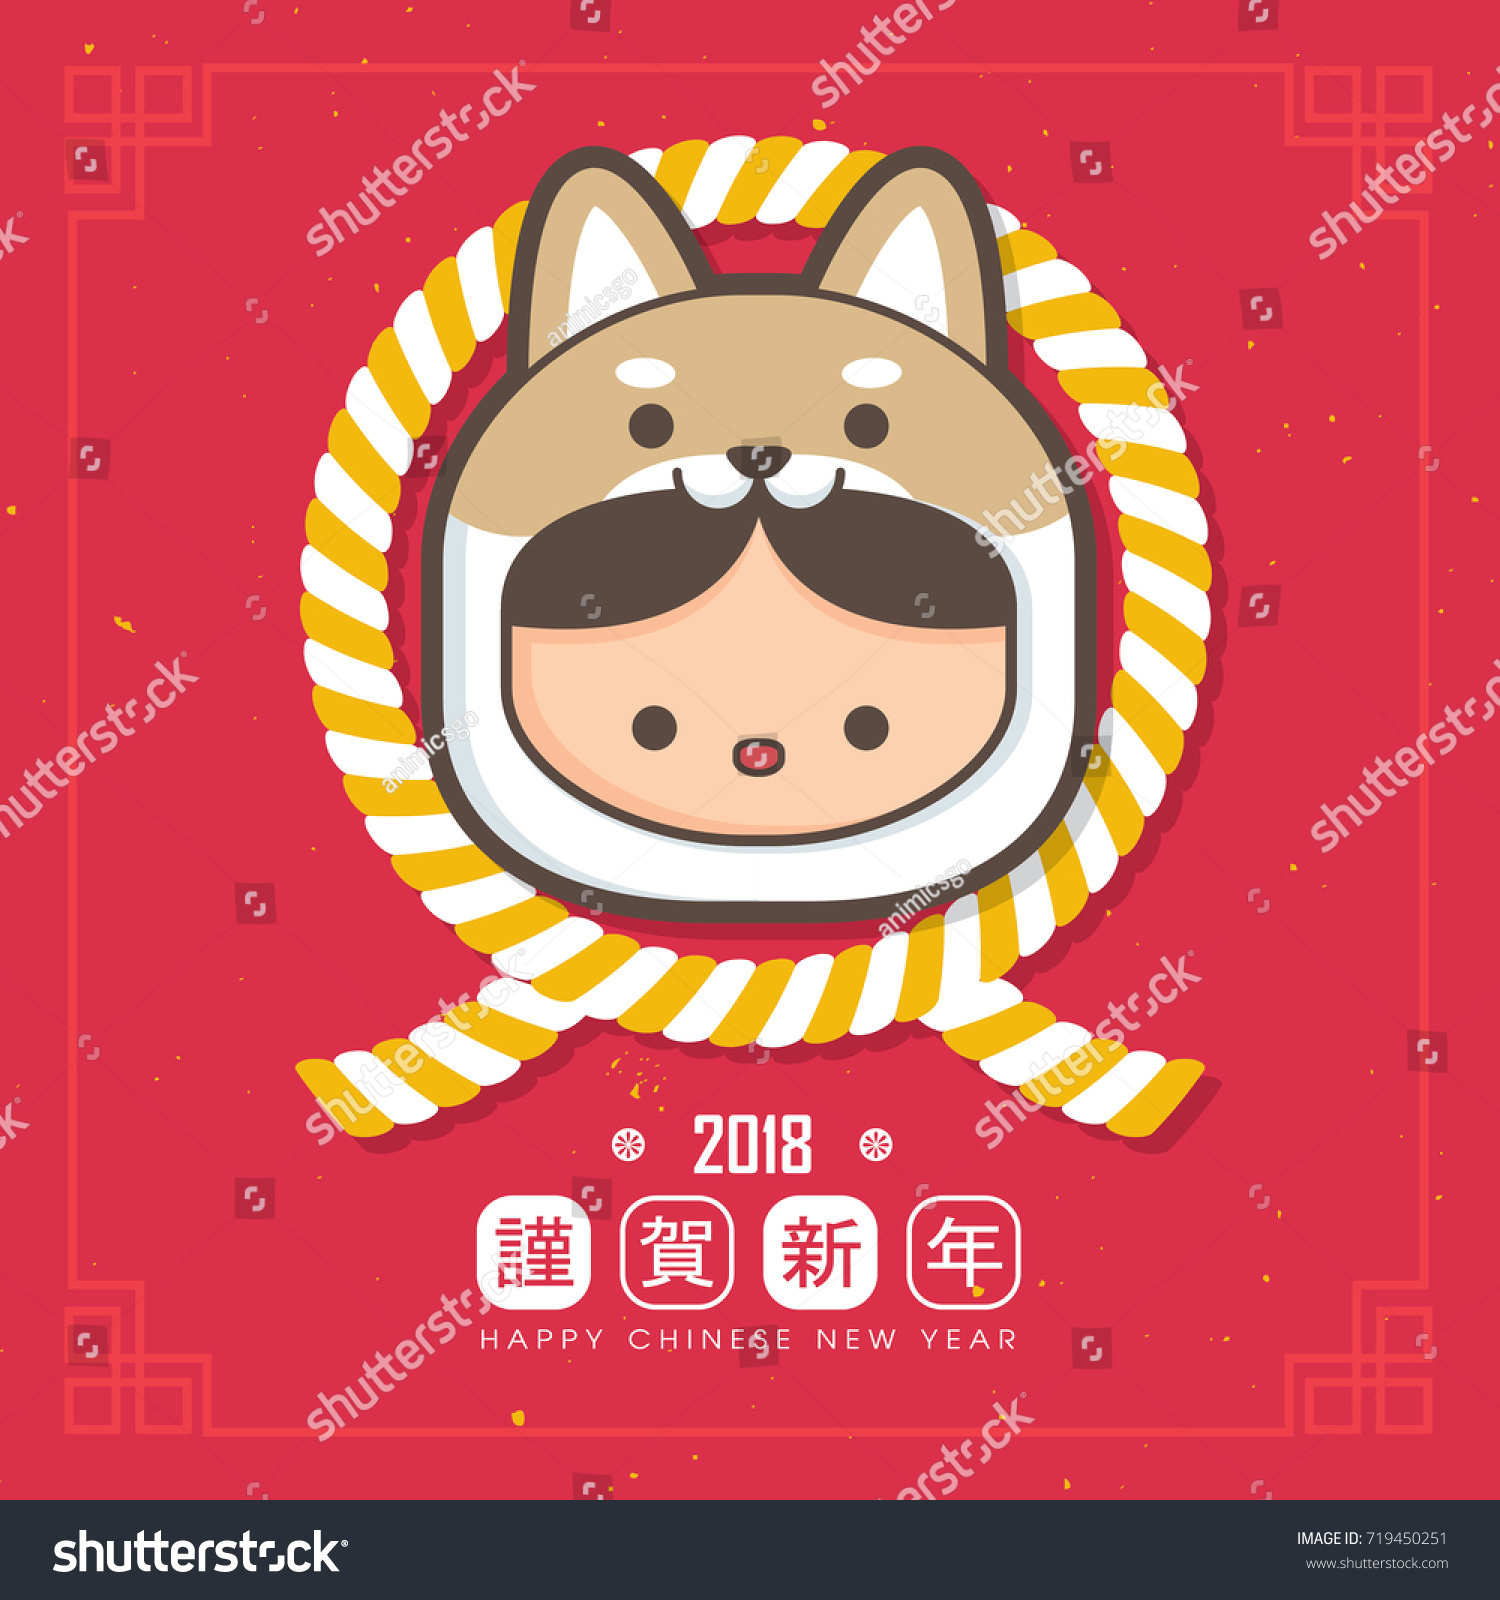 2018 Chinese New Year Year Dog Stock Vector Royalty Free 719450251